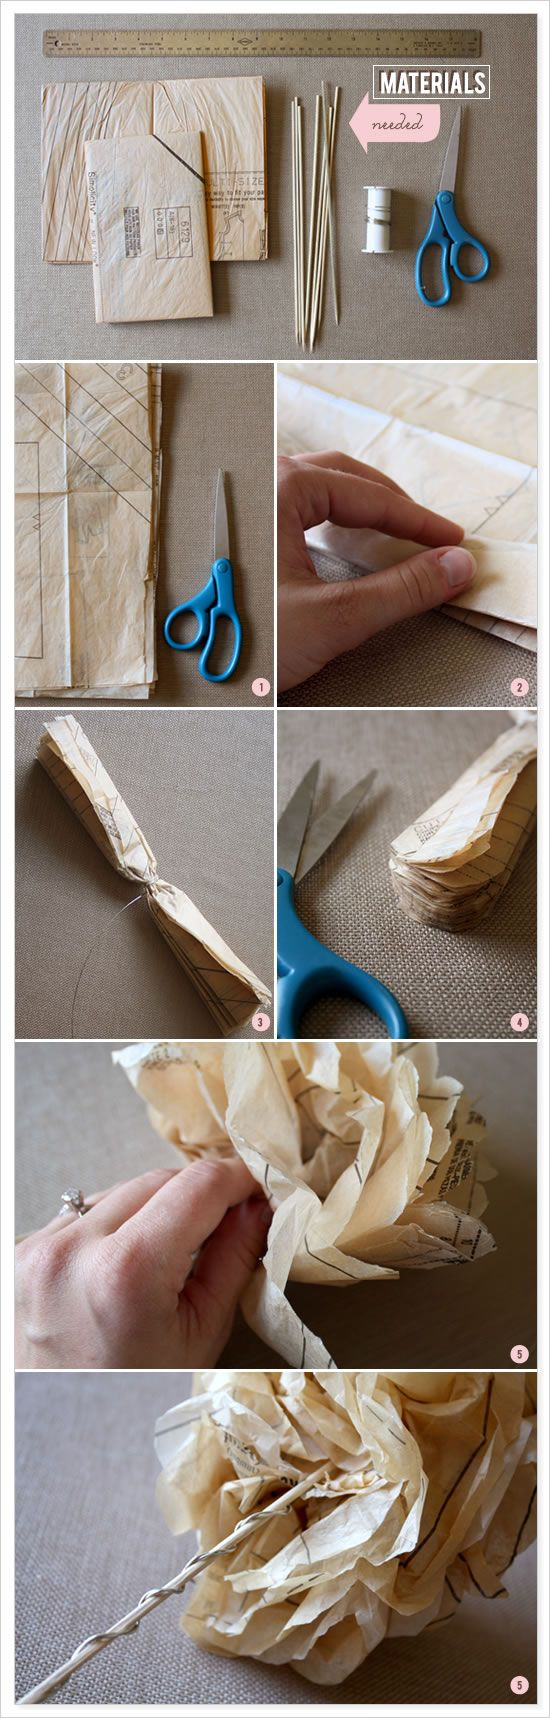 251 Best Creative Paper Craft Ideas And Diy Images On Pinterest